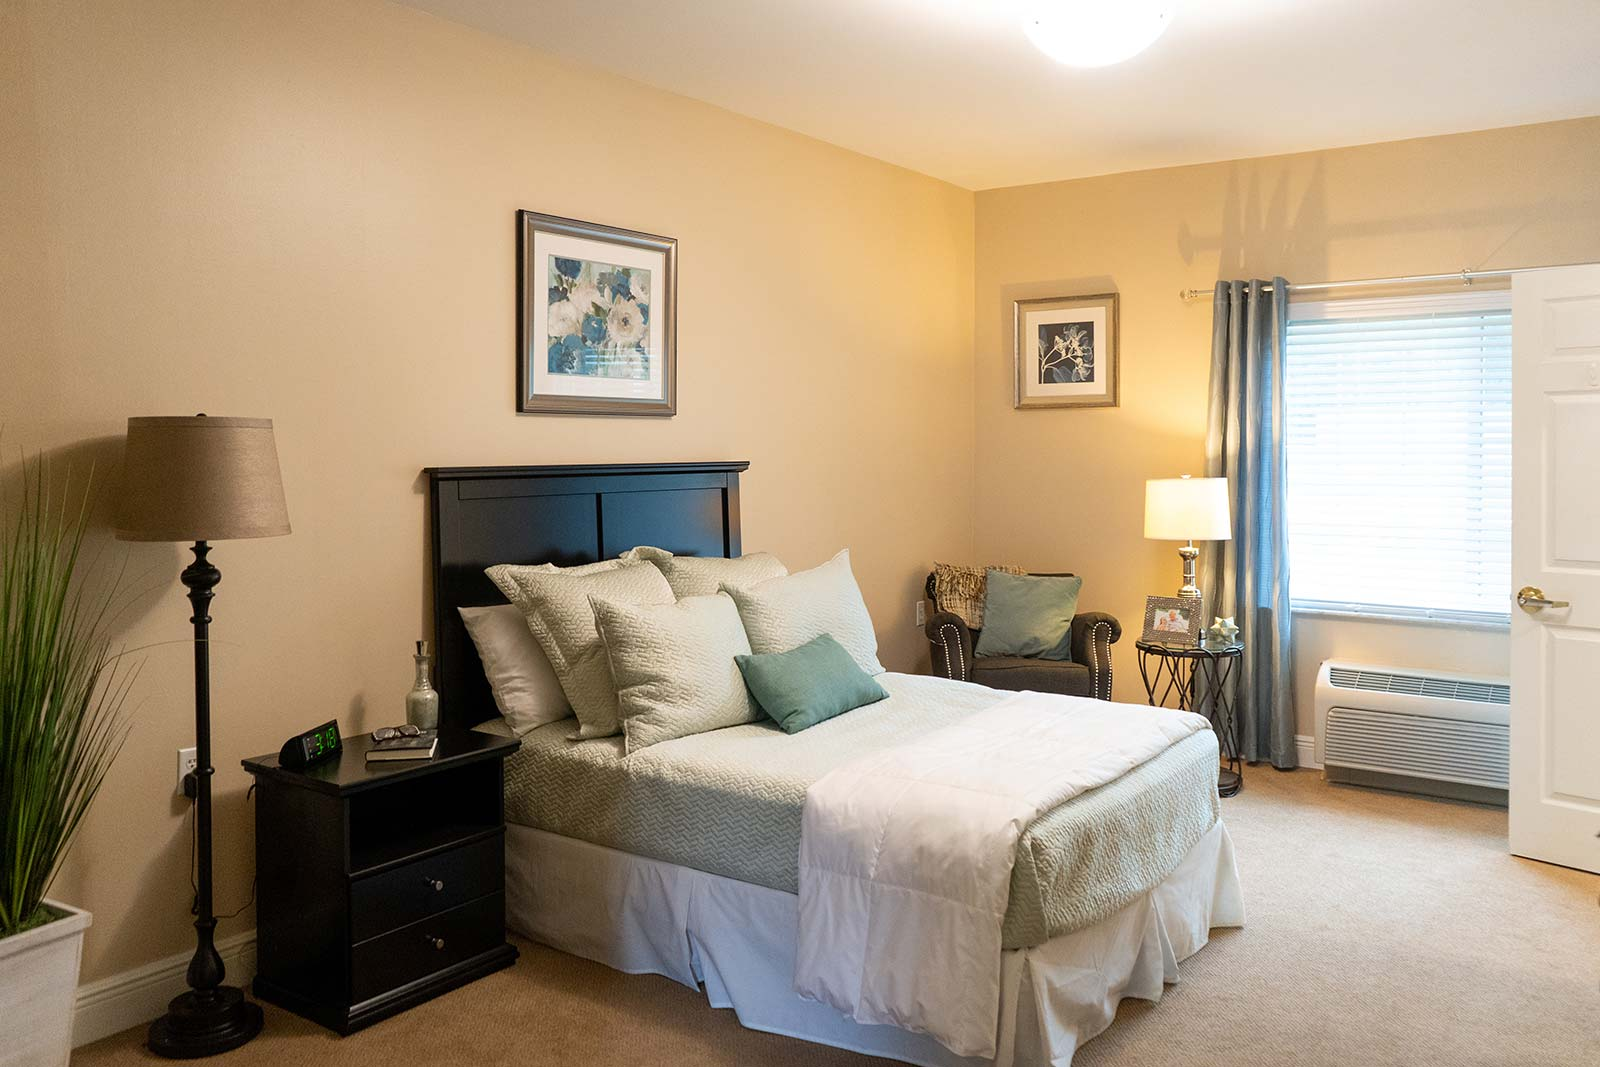 Assisted living apartment bedroom at The Colonnade at Northdale in Tampa, FL